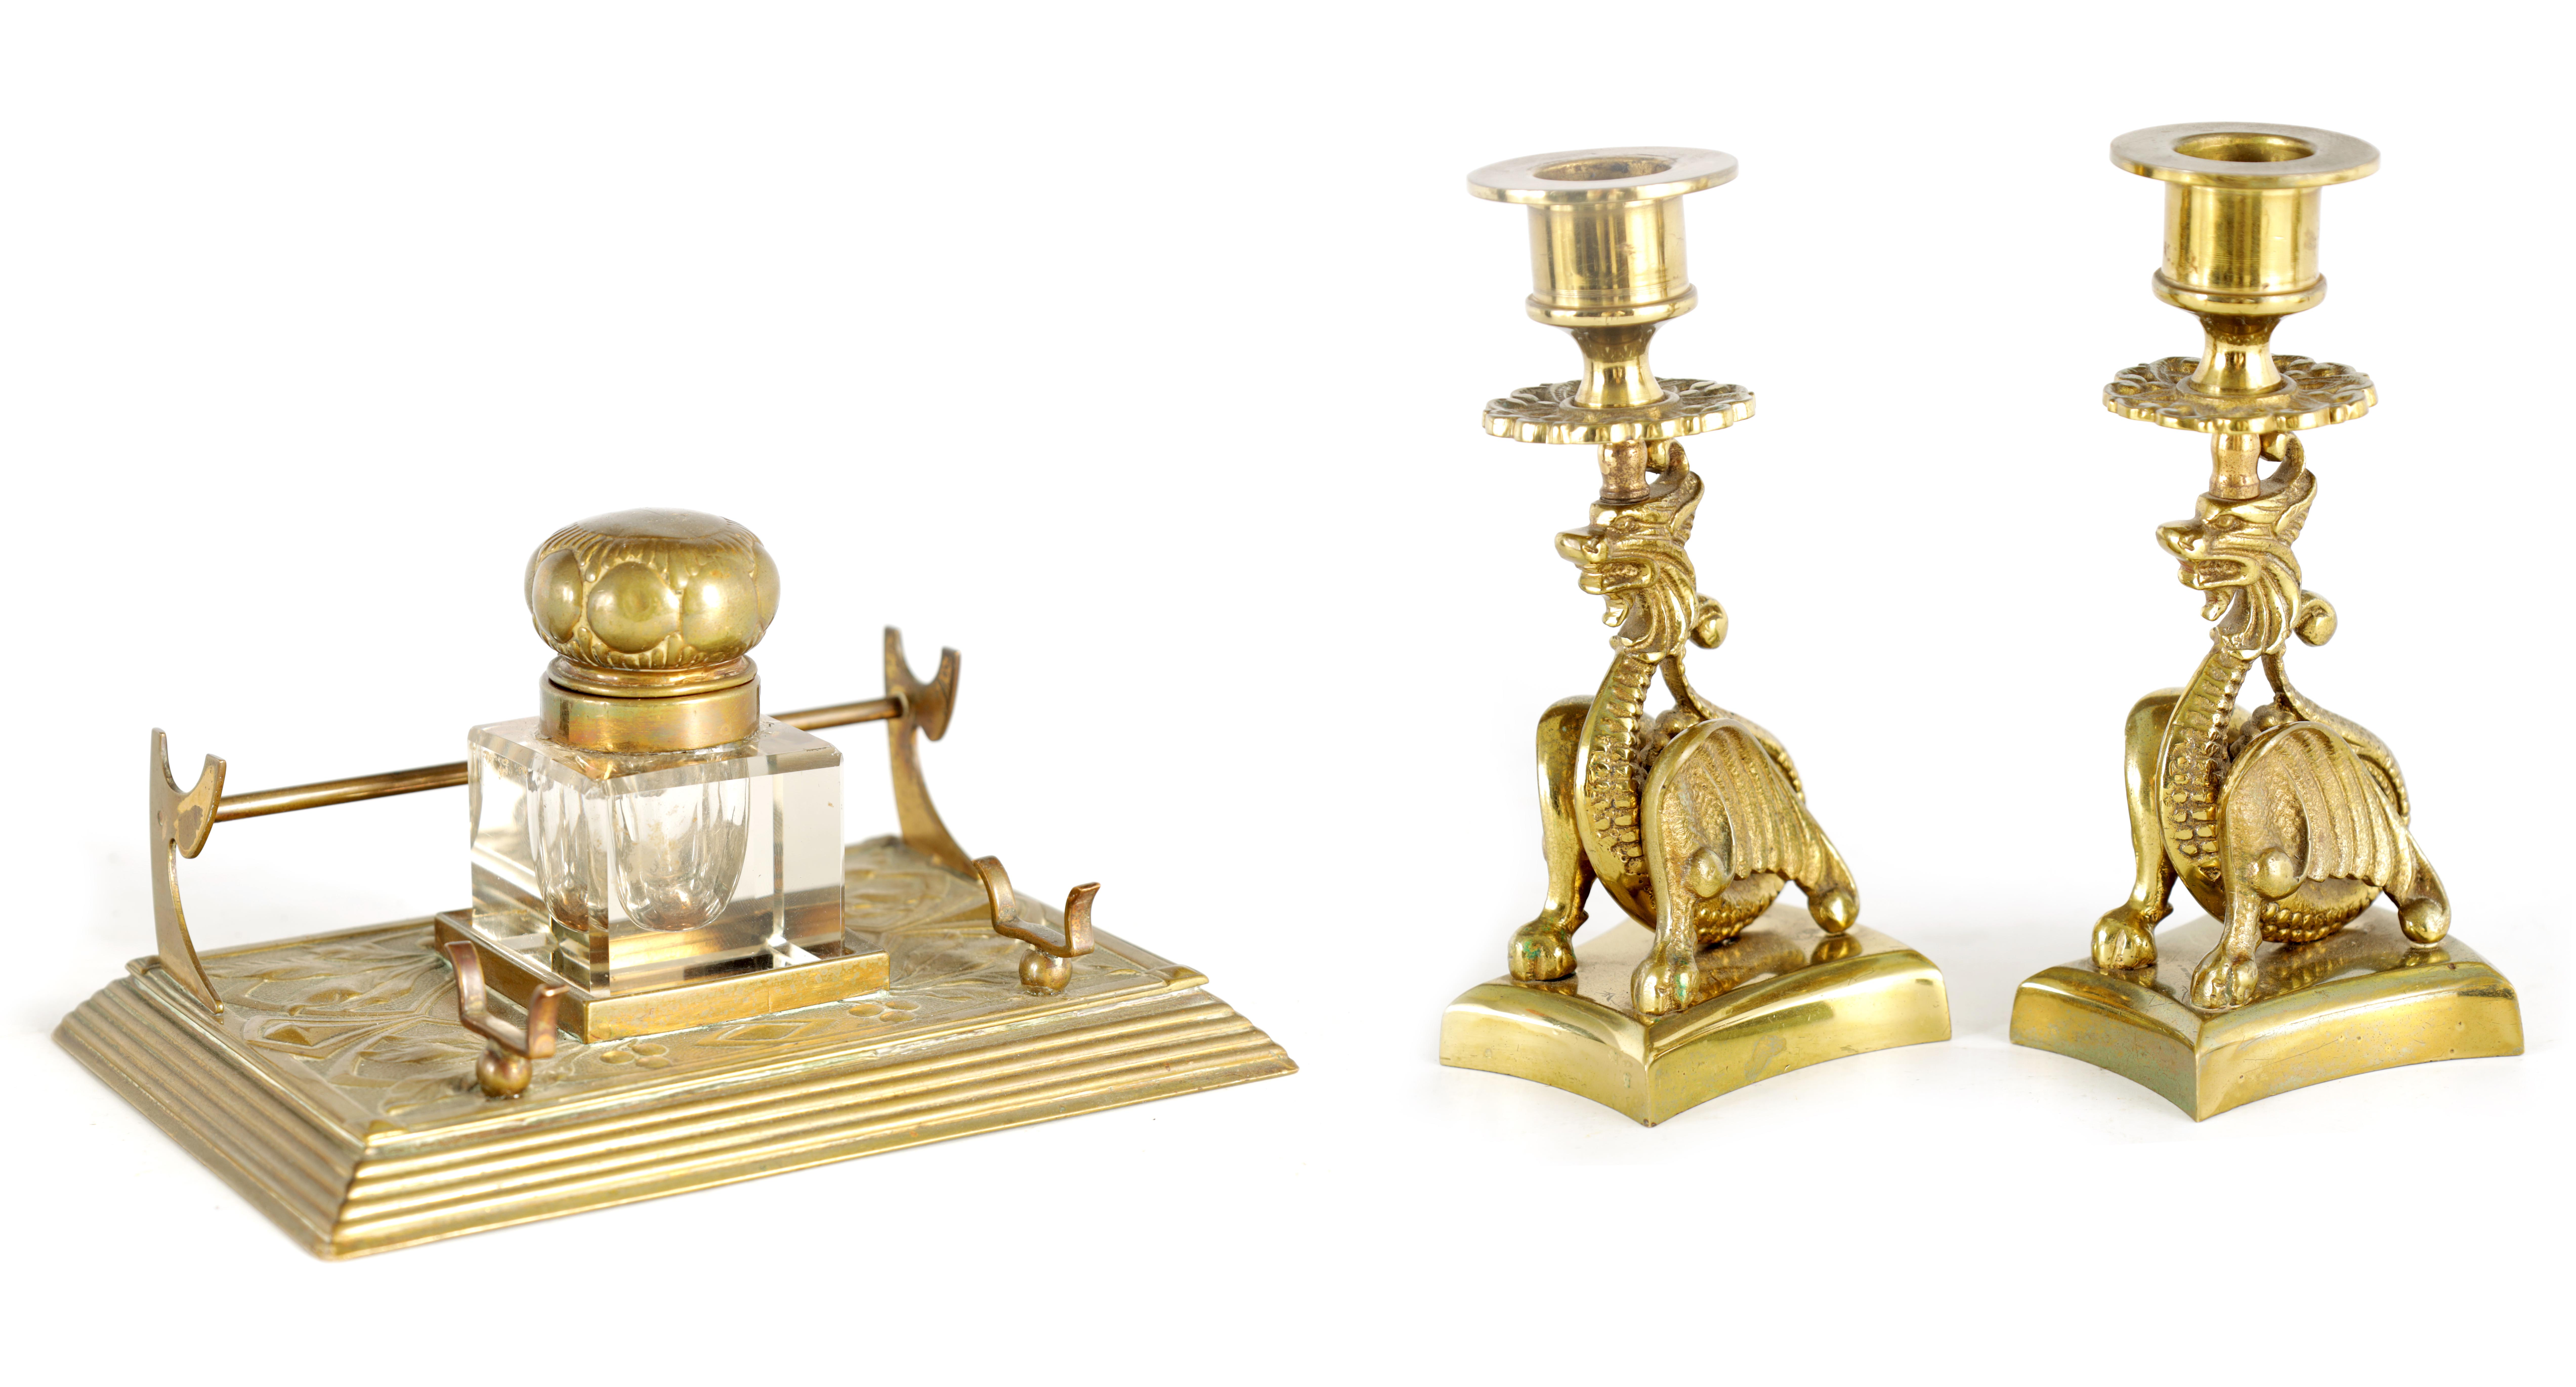 A PAIR OF ORIENTAL STYLE BRASS CANDLESTICKS with crouching dragon and shaped bases 14cm high